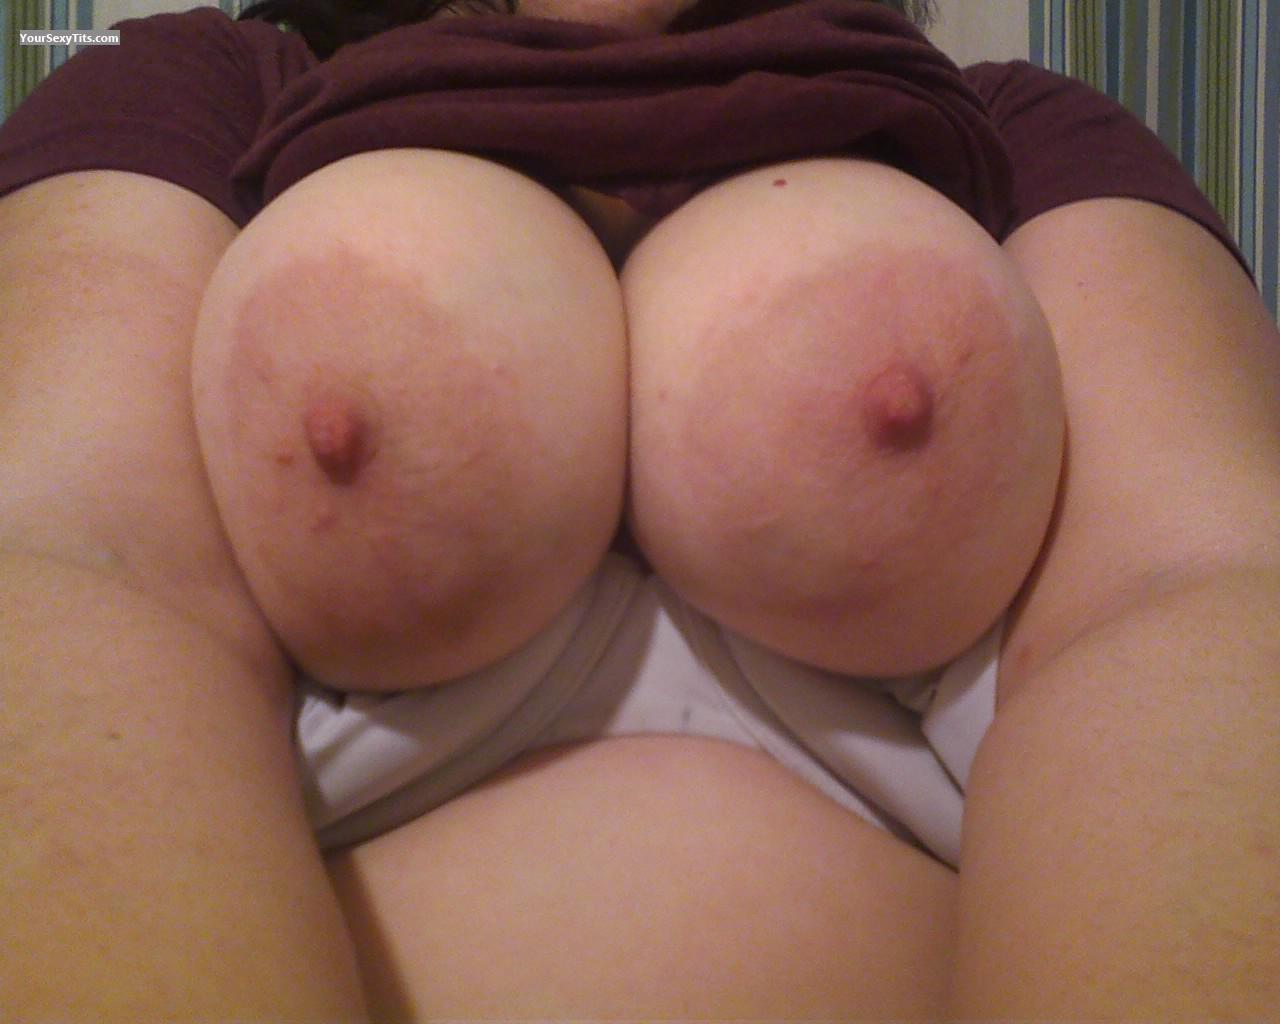 Tit Flash: Wife's Big Tits (Selfie) - Jaimee from United States